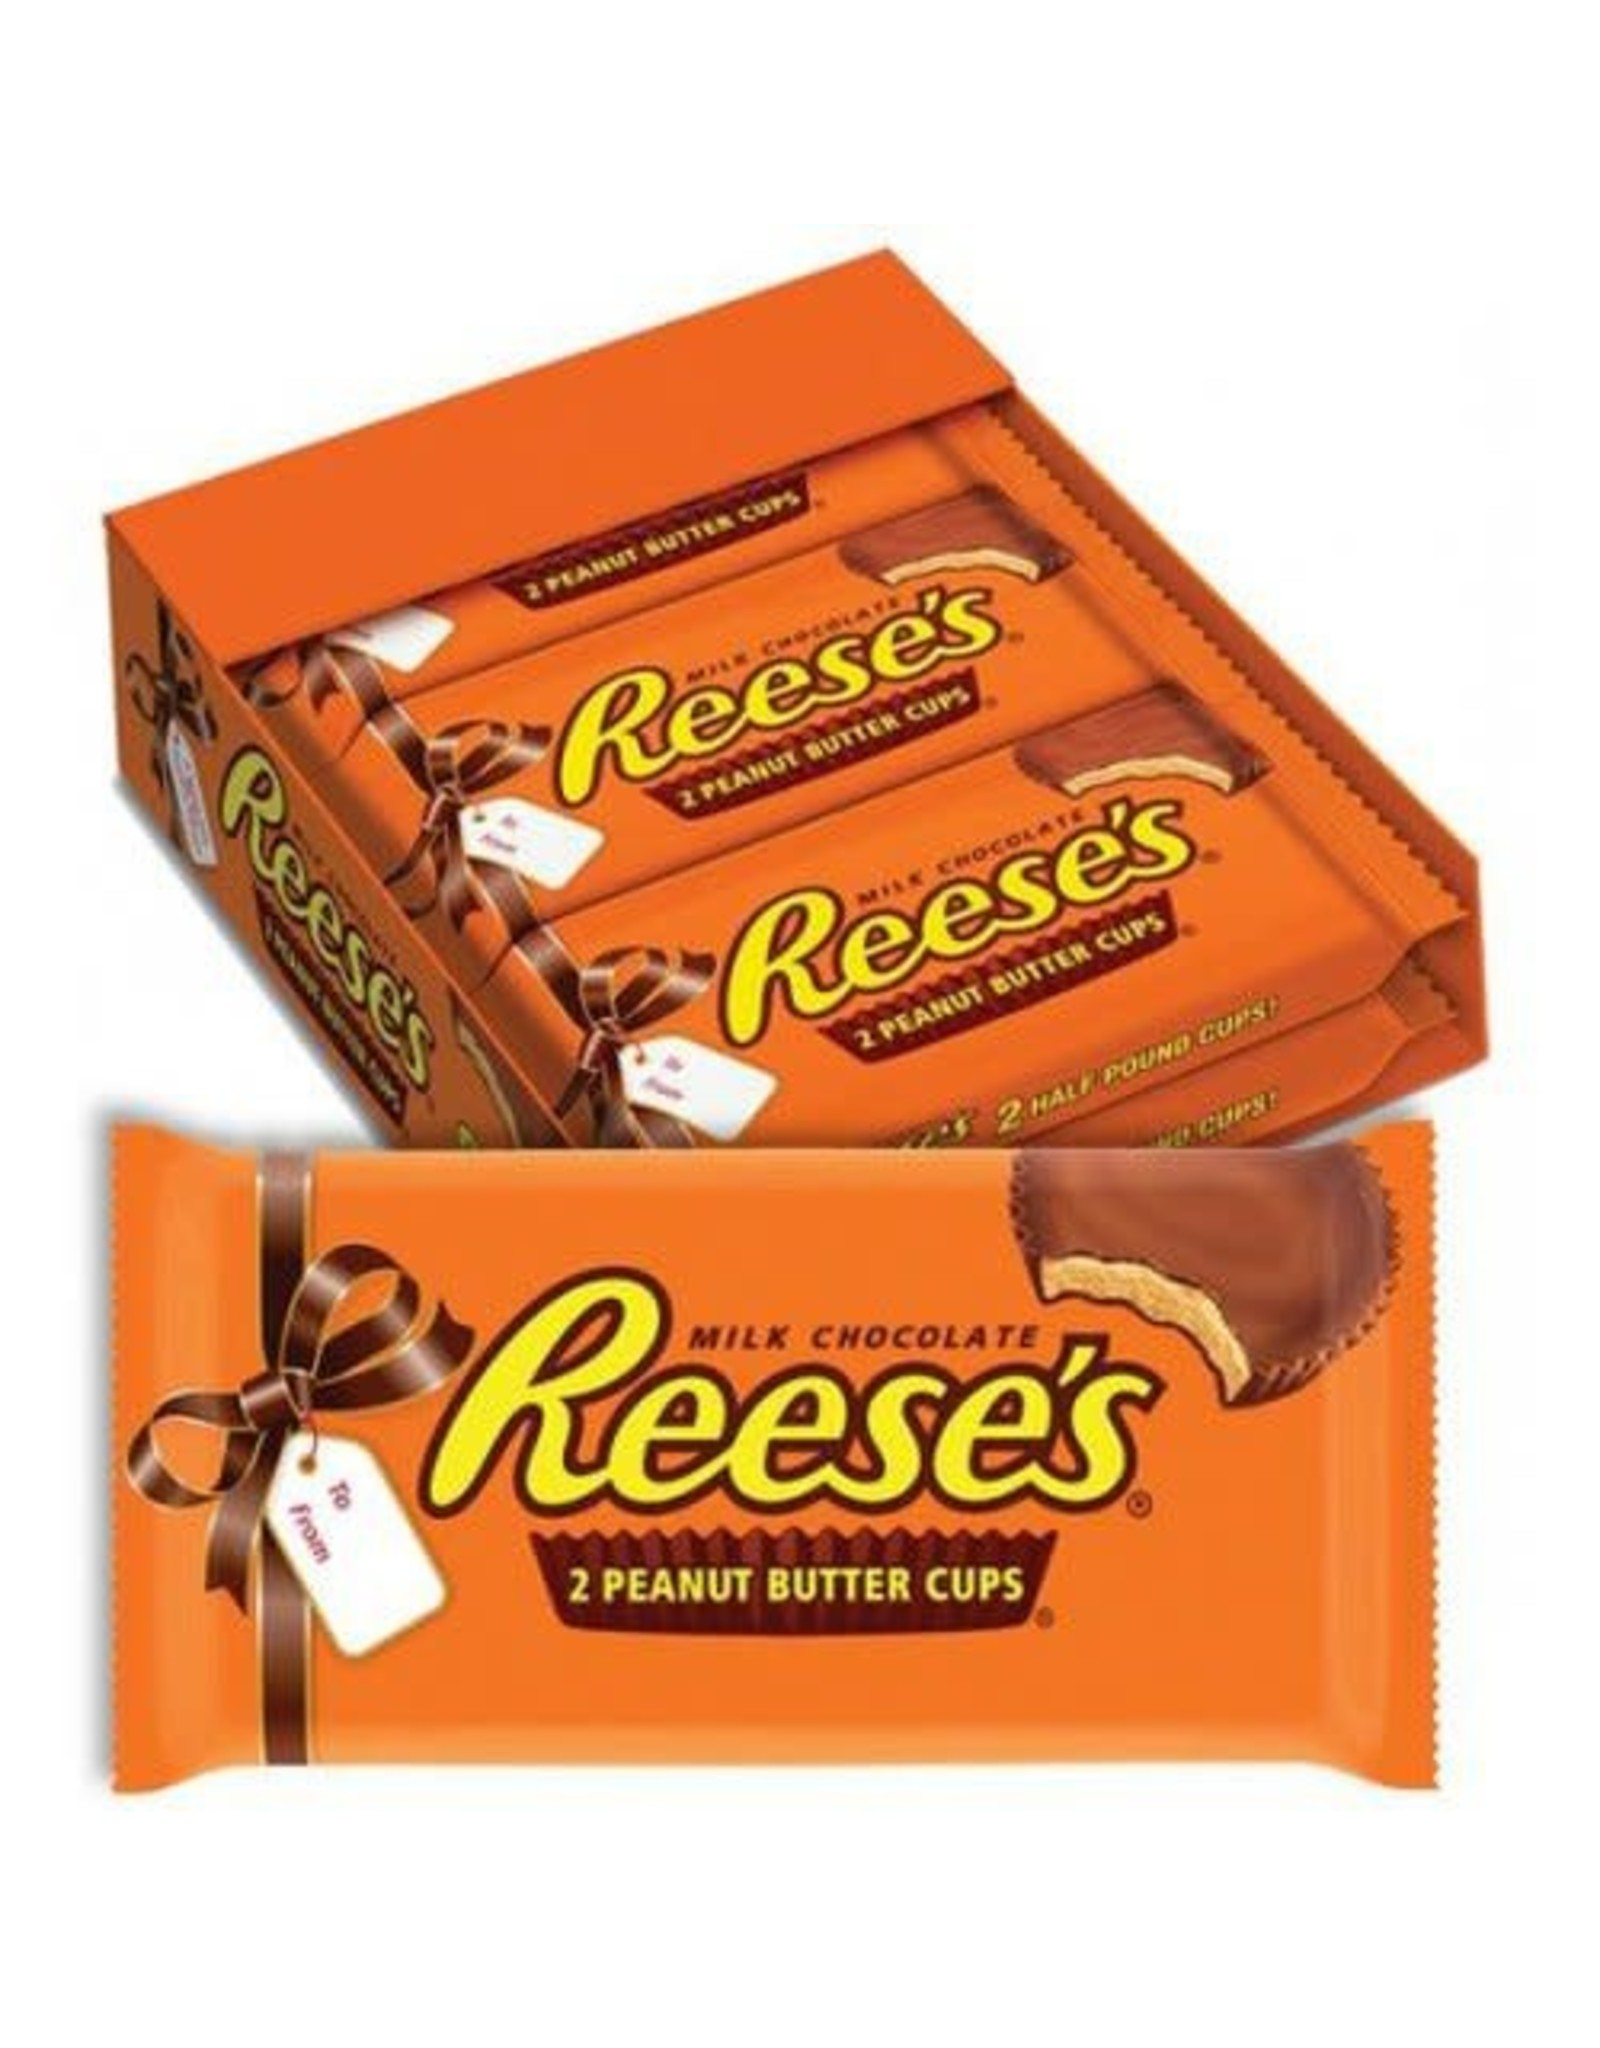 Reese's GIANT 2 Peanut Butter Cups - 453g